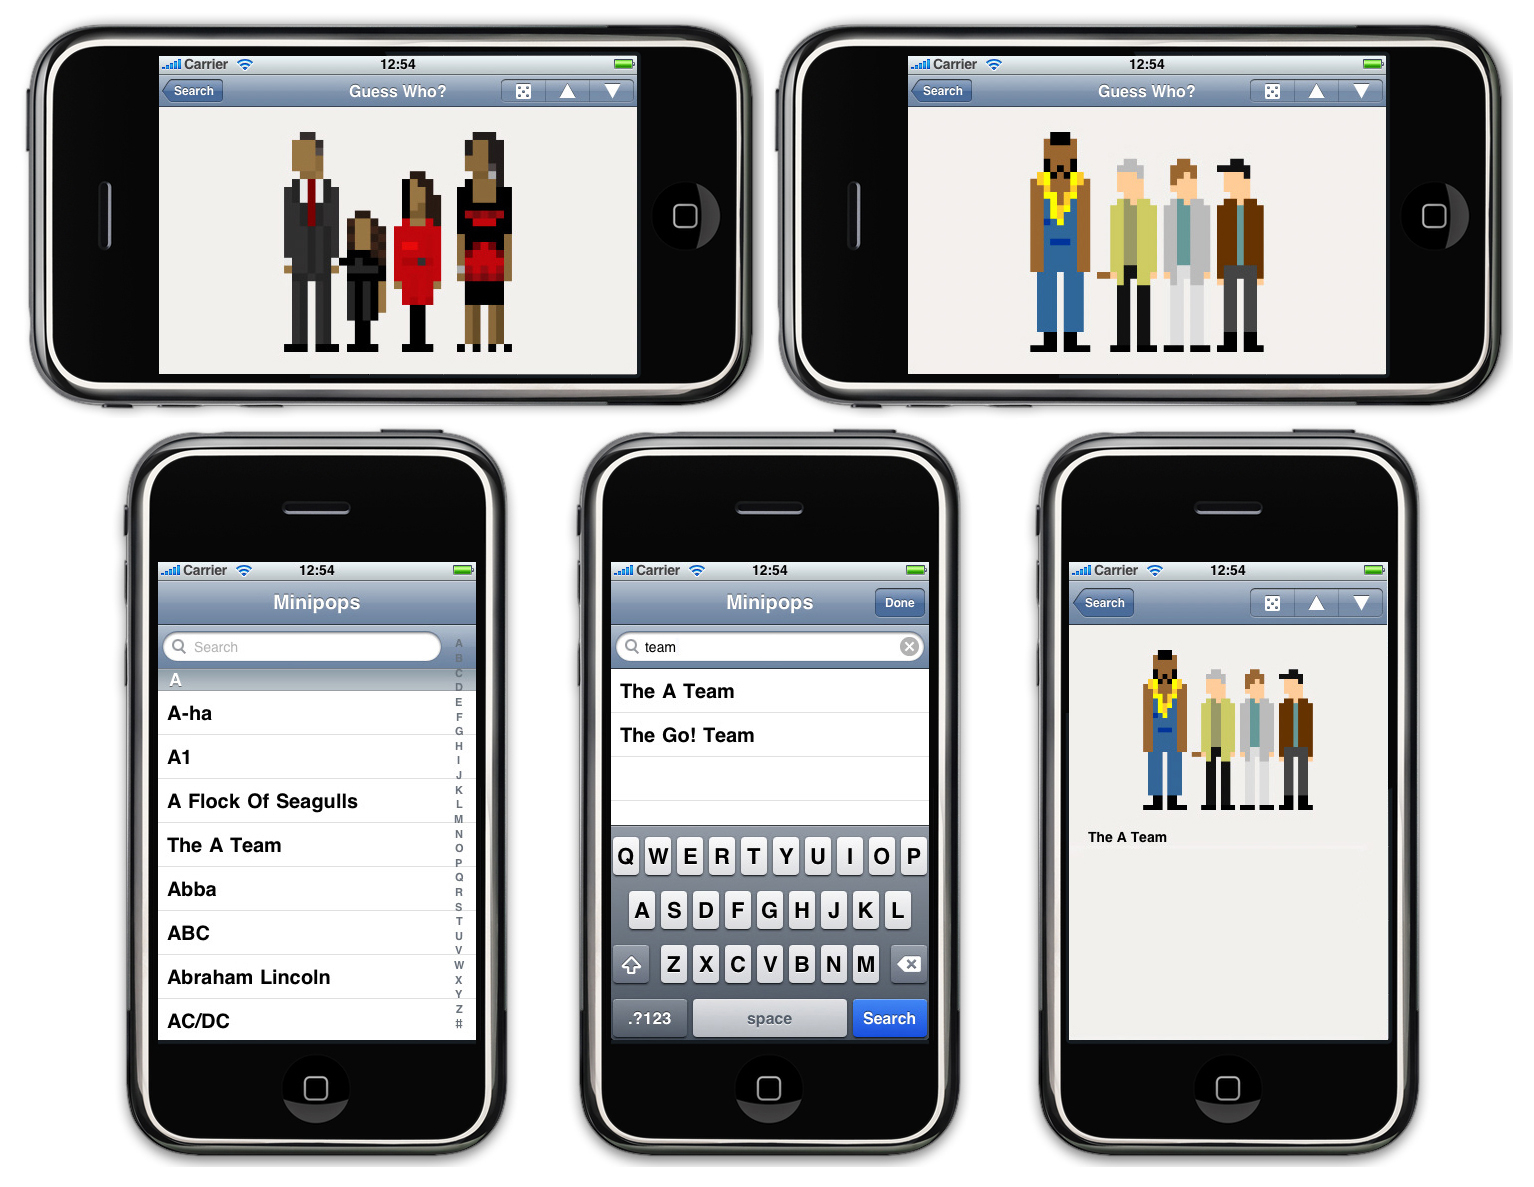 Craig Robinson's Minipops App Available On iTunes App Store